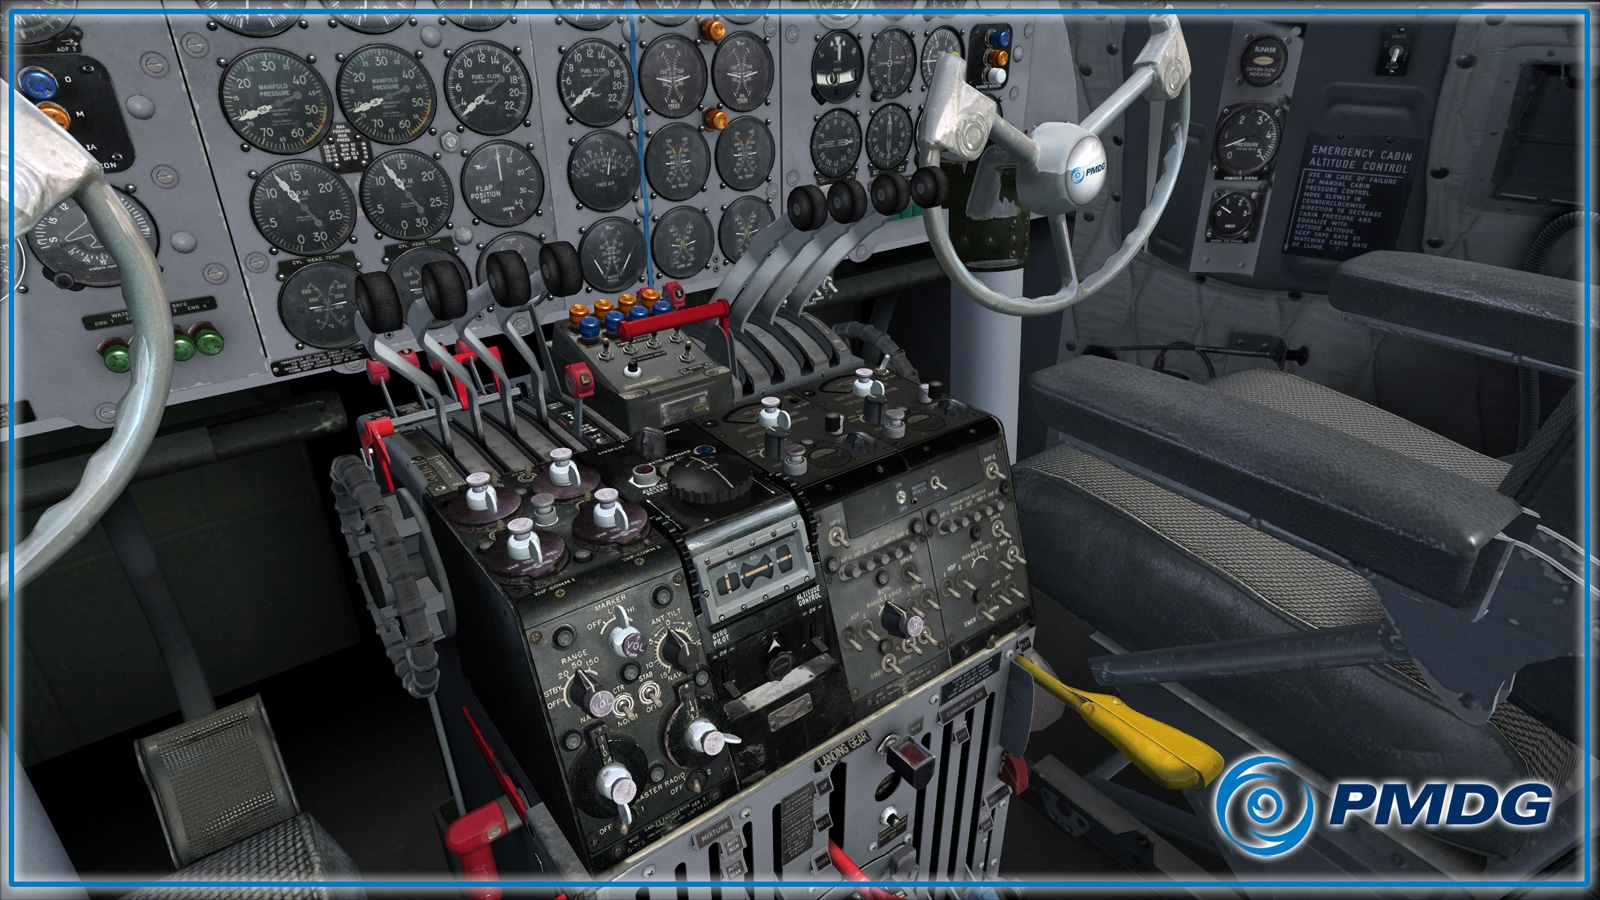 PMDG_DC6_Virtual_Cockpit_03.jpg